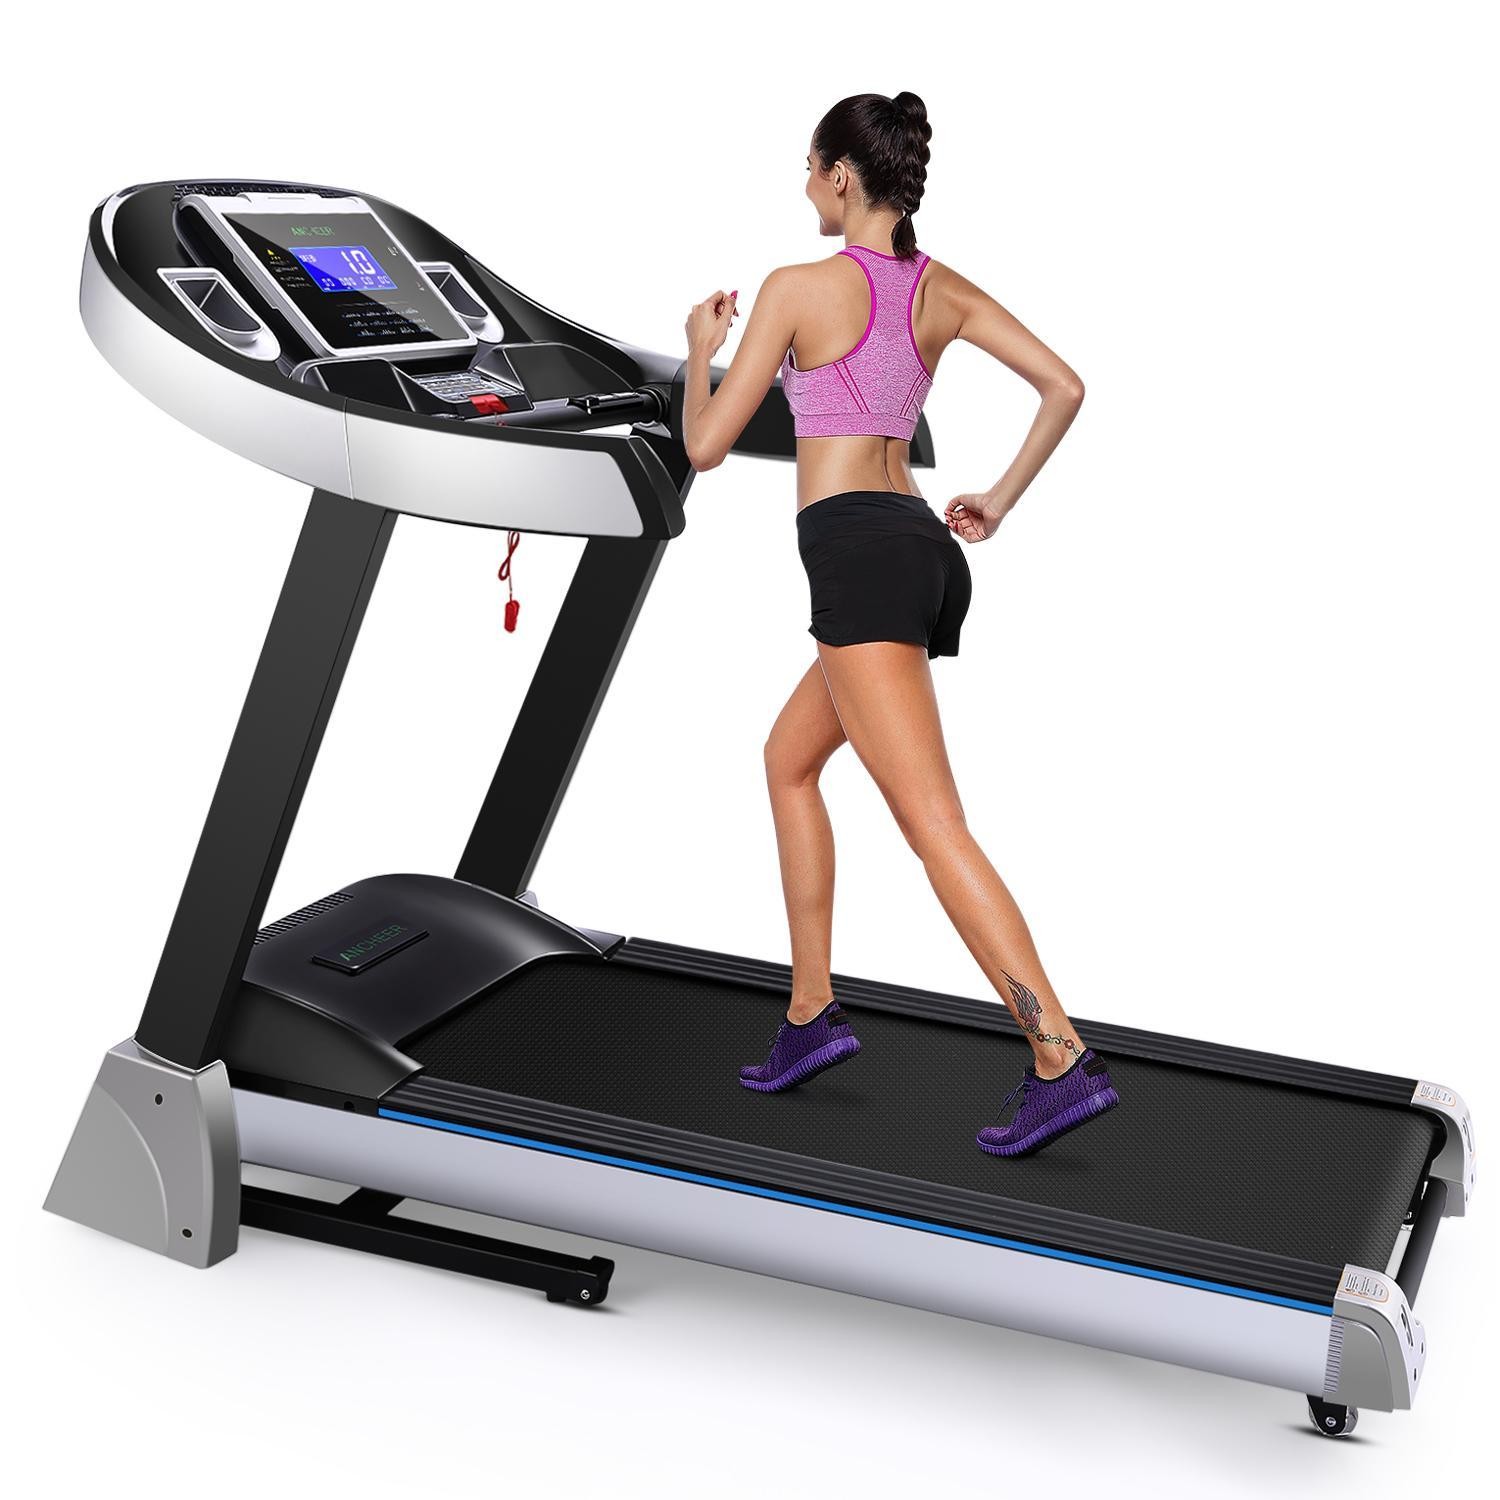 Clearance! Ancheer 4.5hp with 15% Auto Power Incline and 7'' Display Foldable Electric Treadmill Fitness Running Exercise Machine with Rolling Wheel, wide belt for gym home[US Plug]